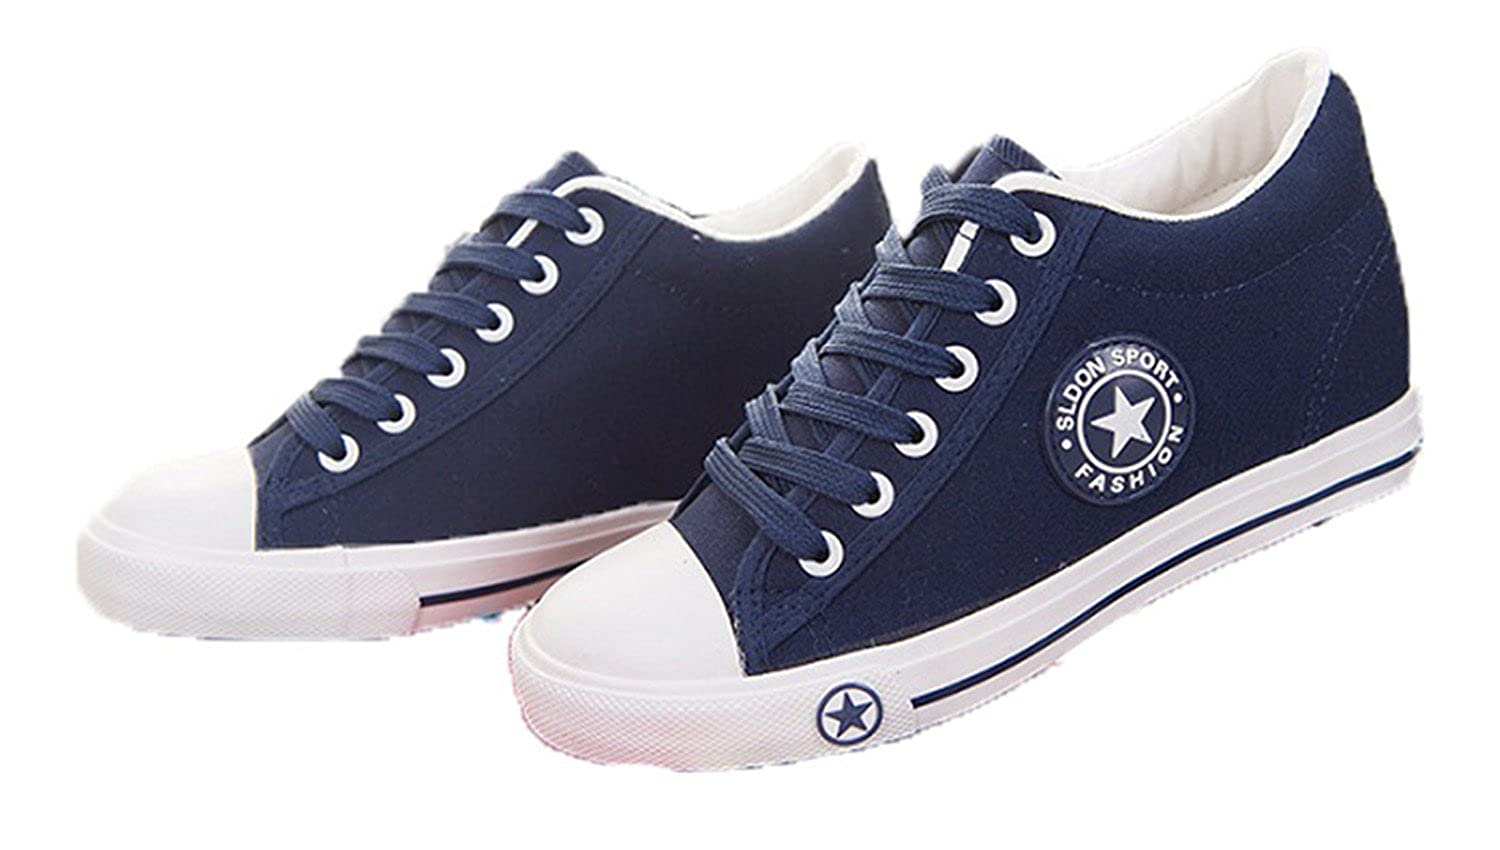 c4f209fec NEWMEN RIGHT Summer Sneakers Women Trainers Wedges Casual Canvas Shoes  Female Basket Femme: Amazon.co.uk: Shoes & Bags